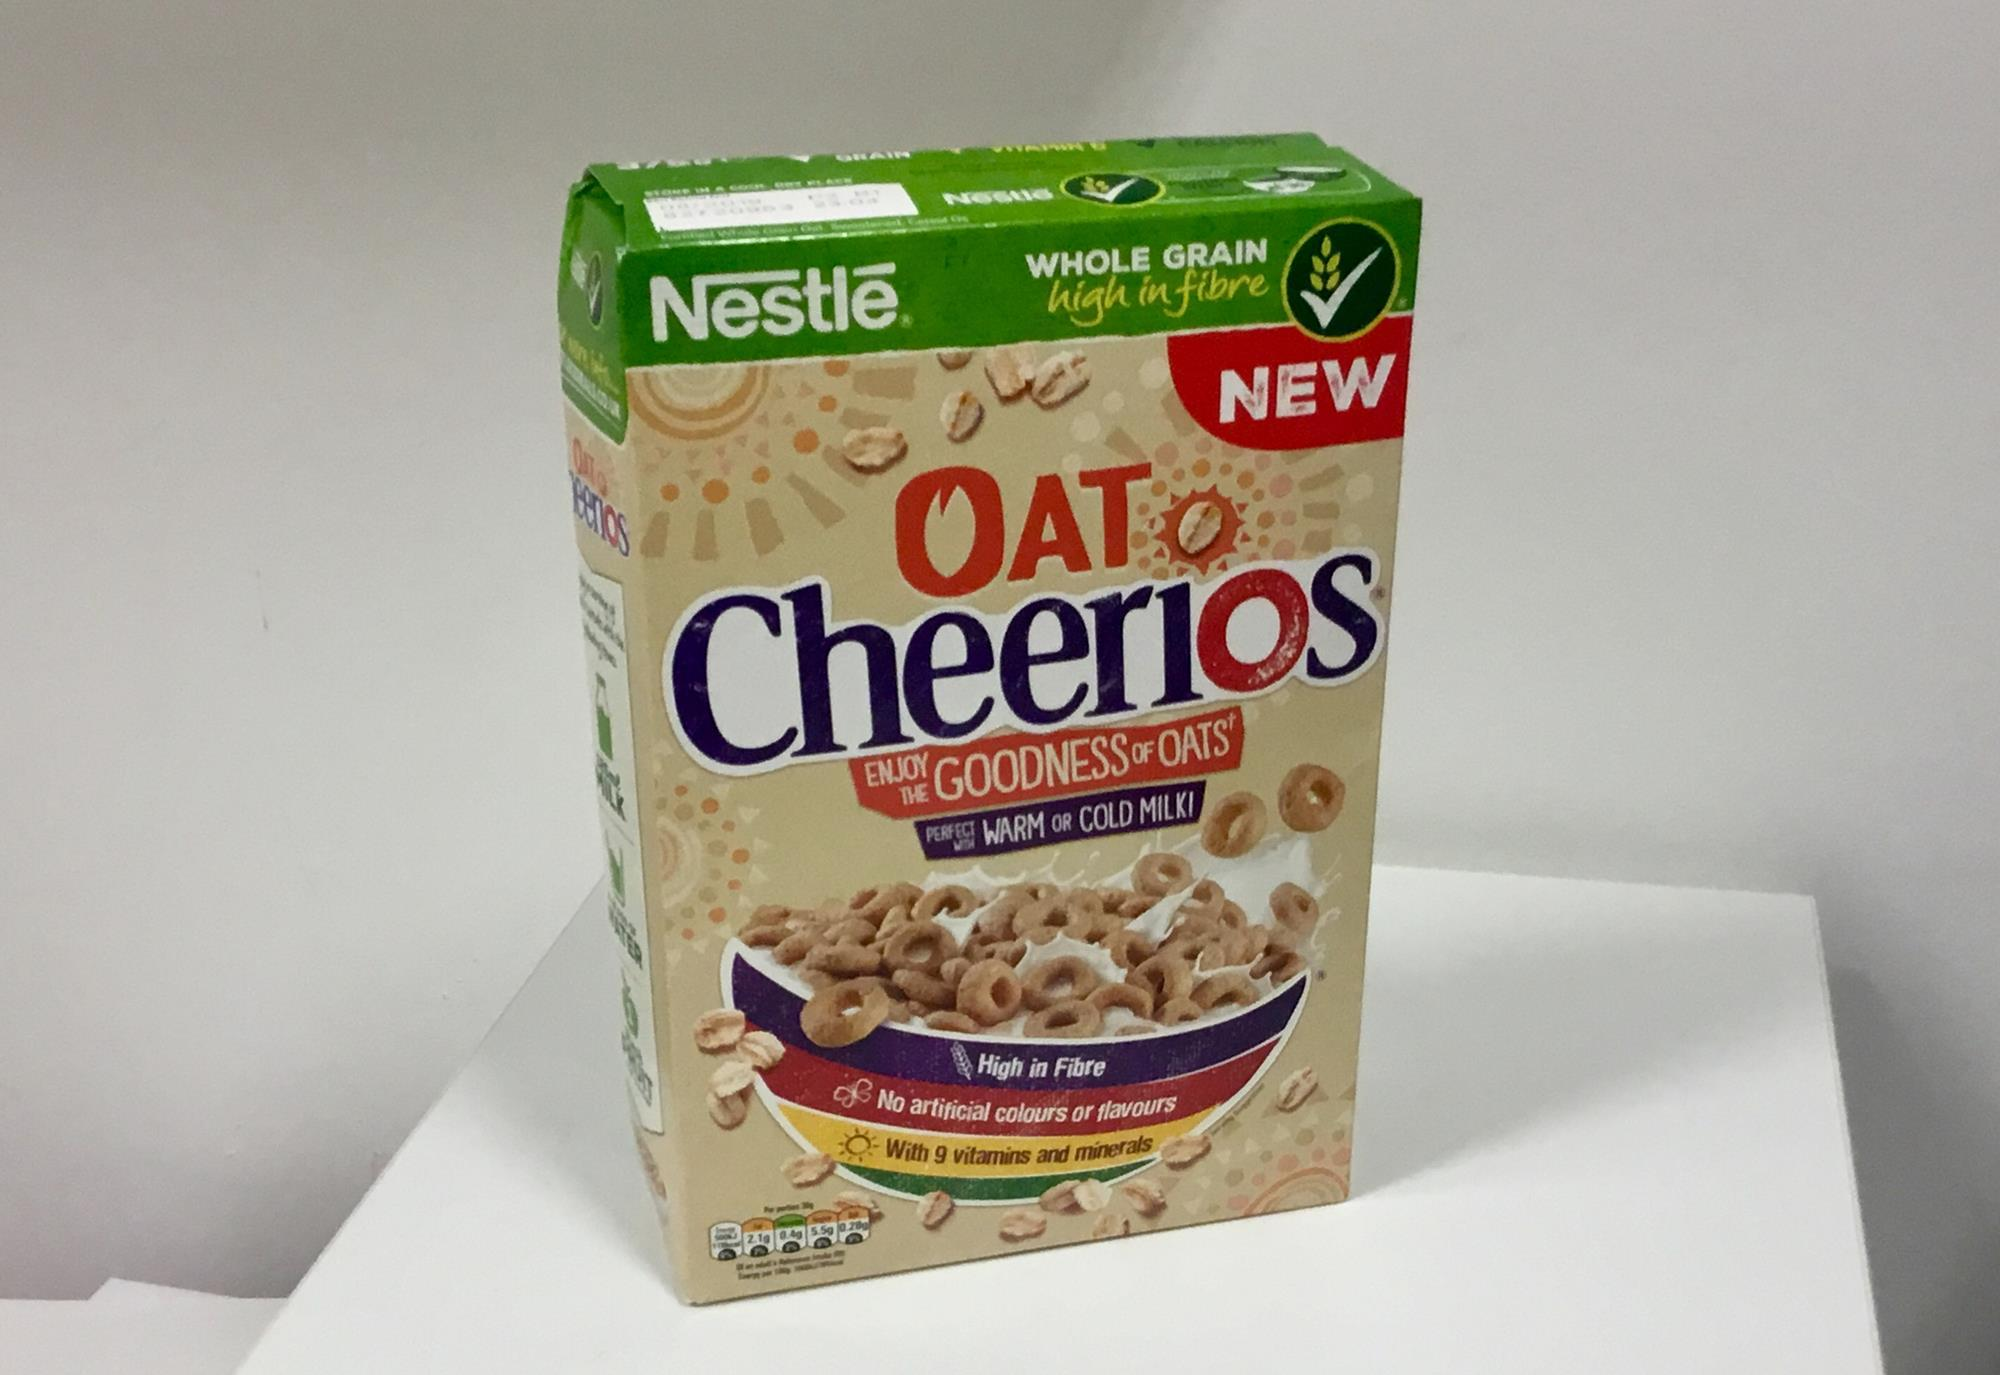 Nestle launches Oat Cheerios made with British grains